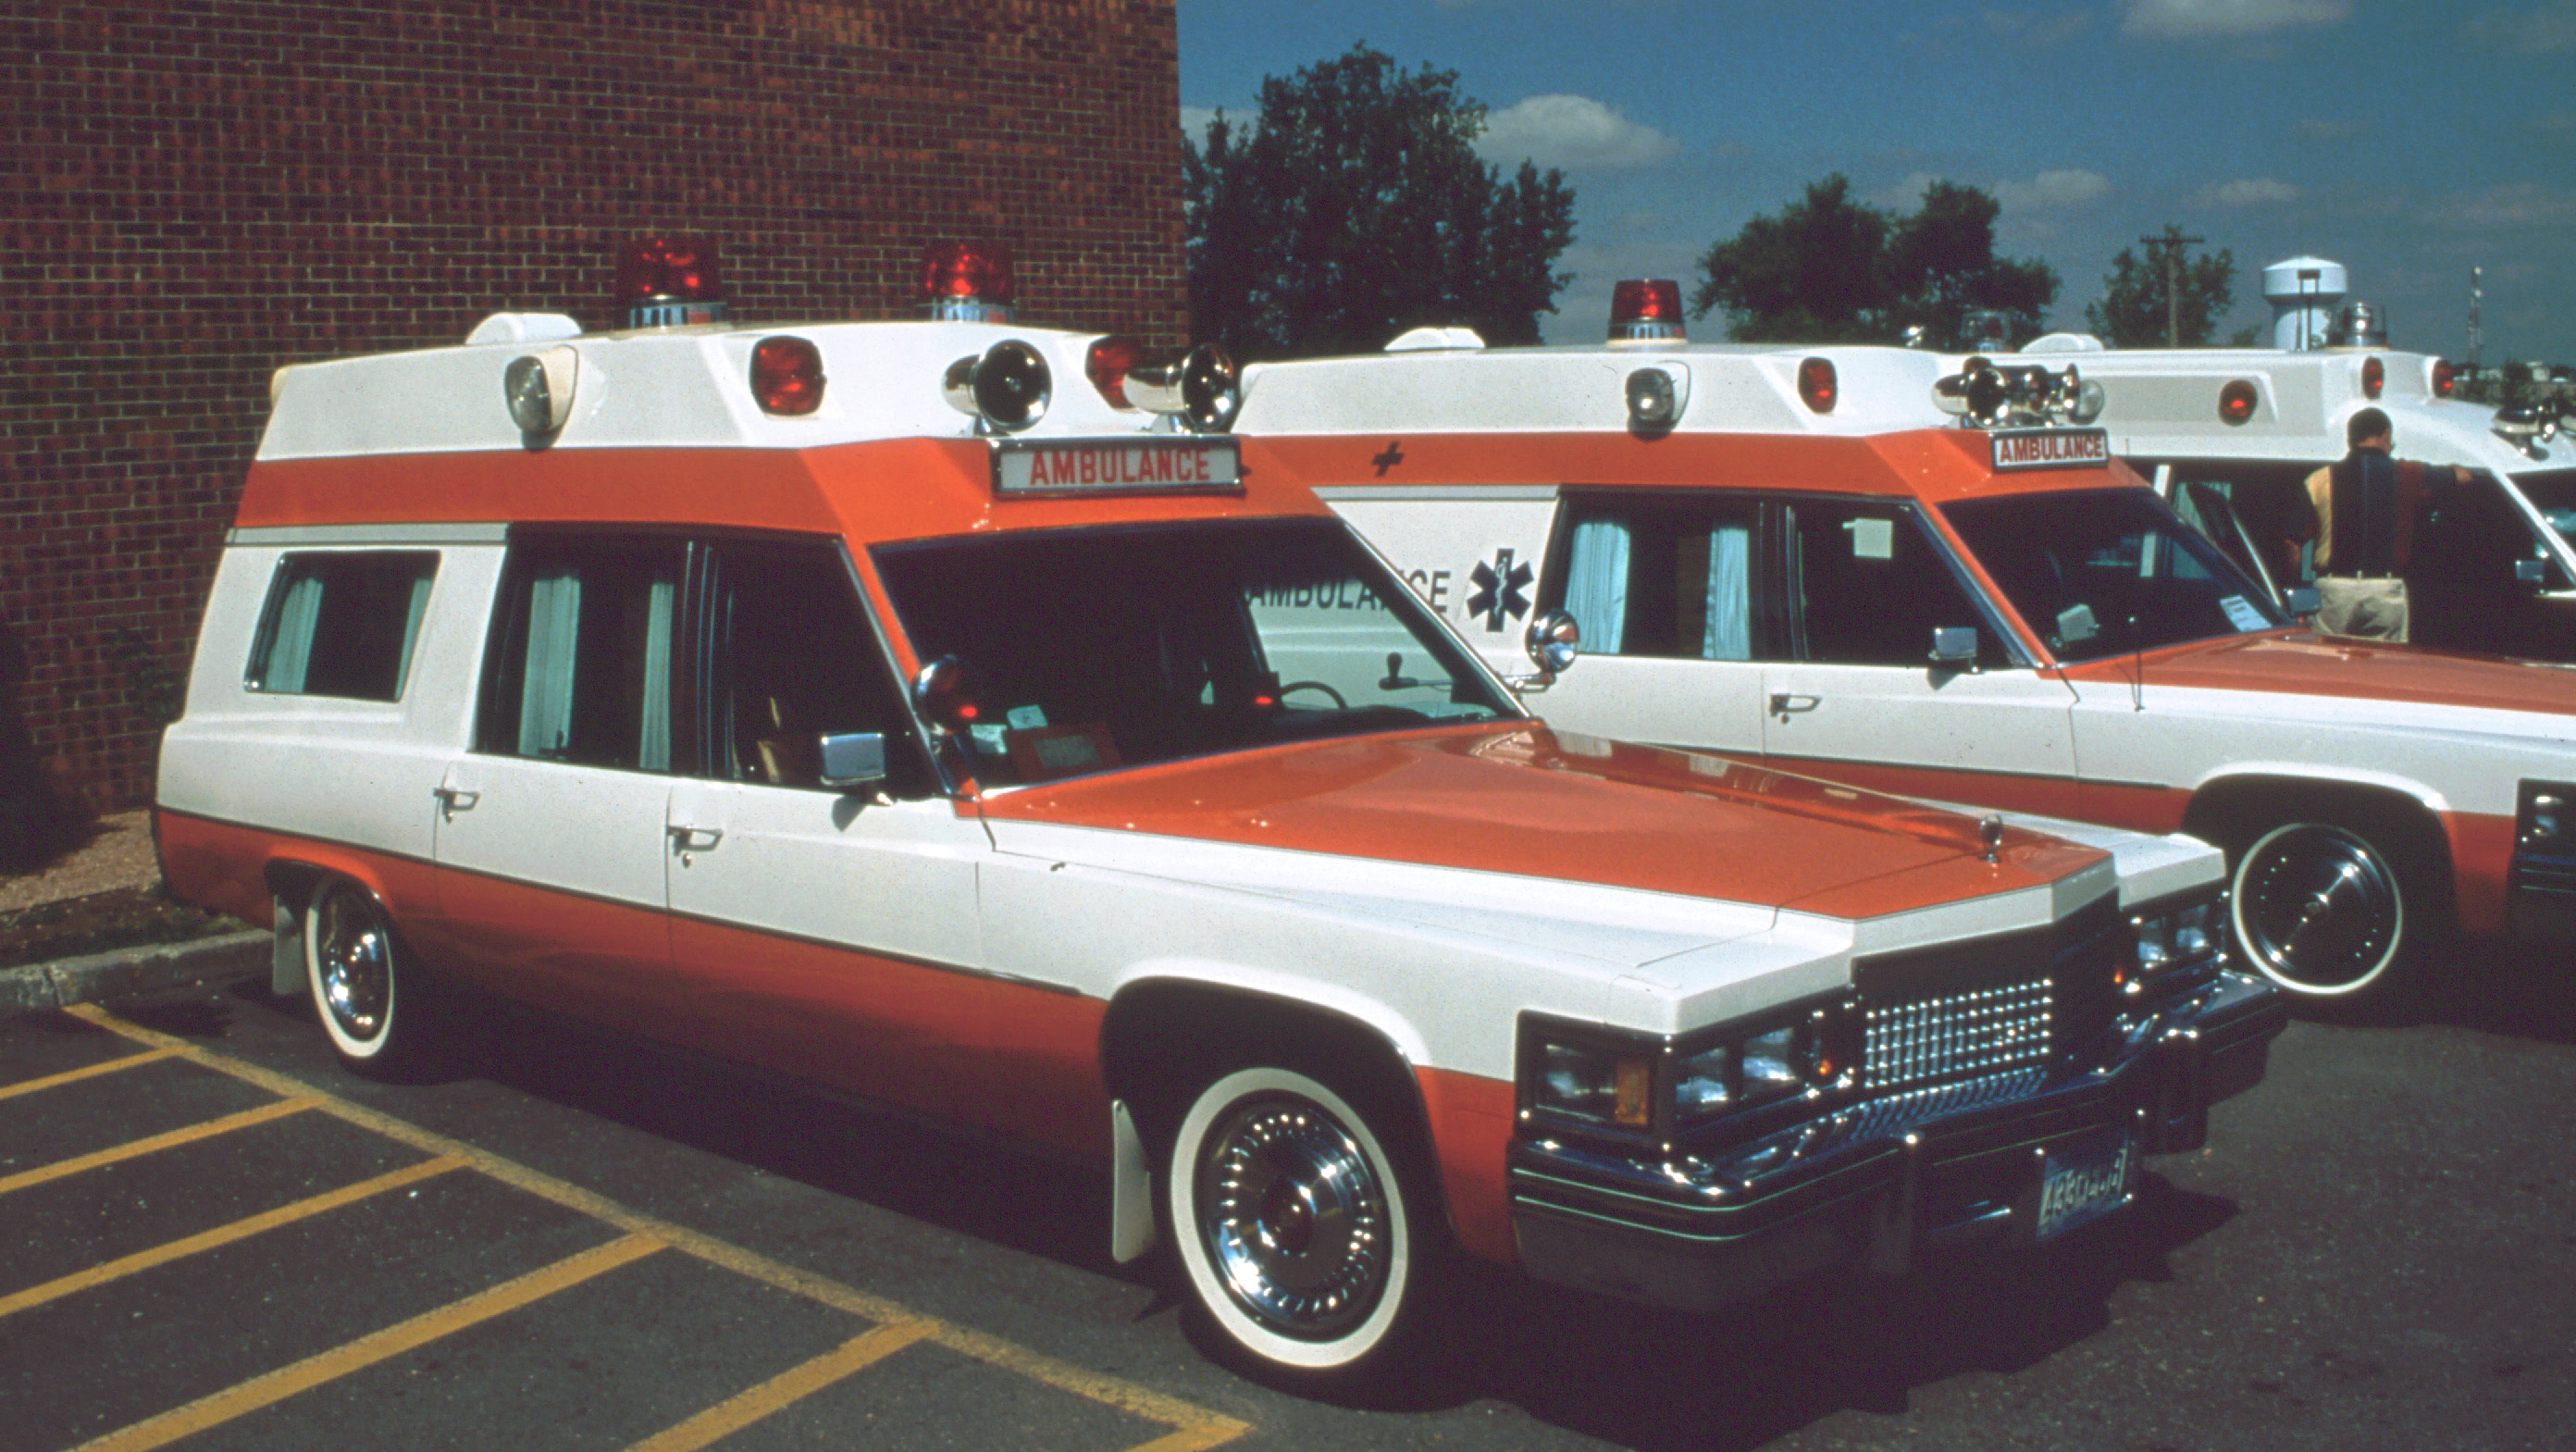 Dr. Roger White's Cadillac